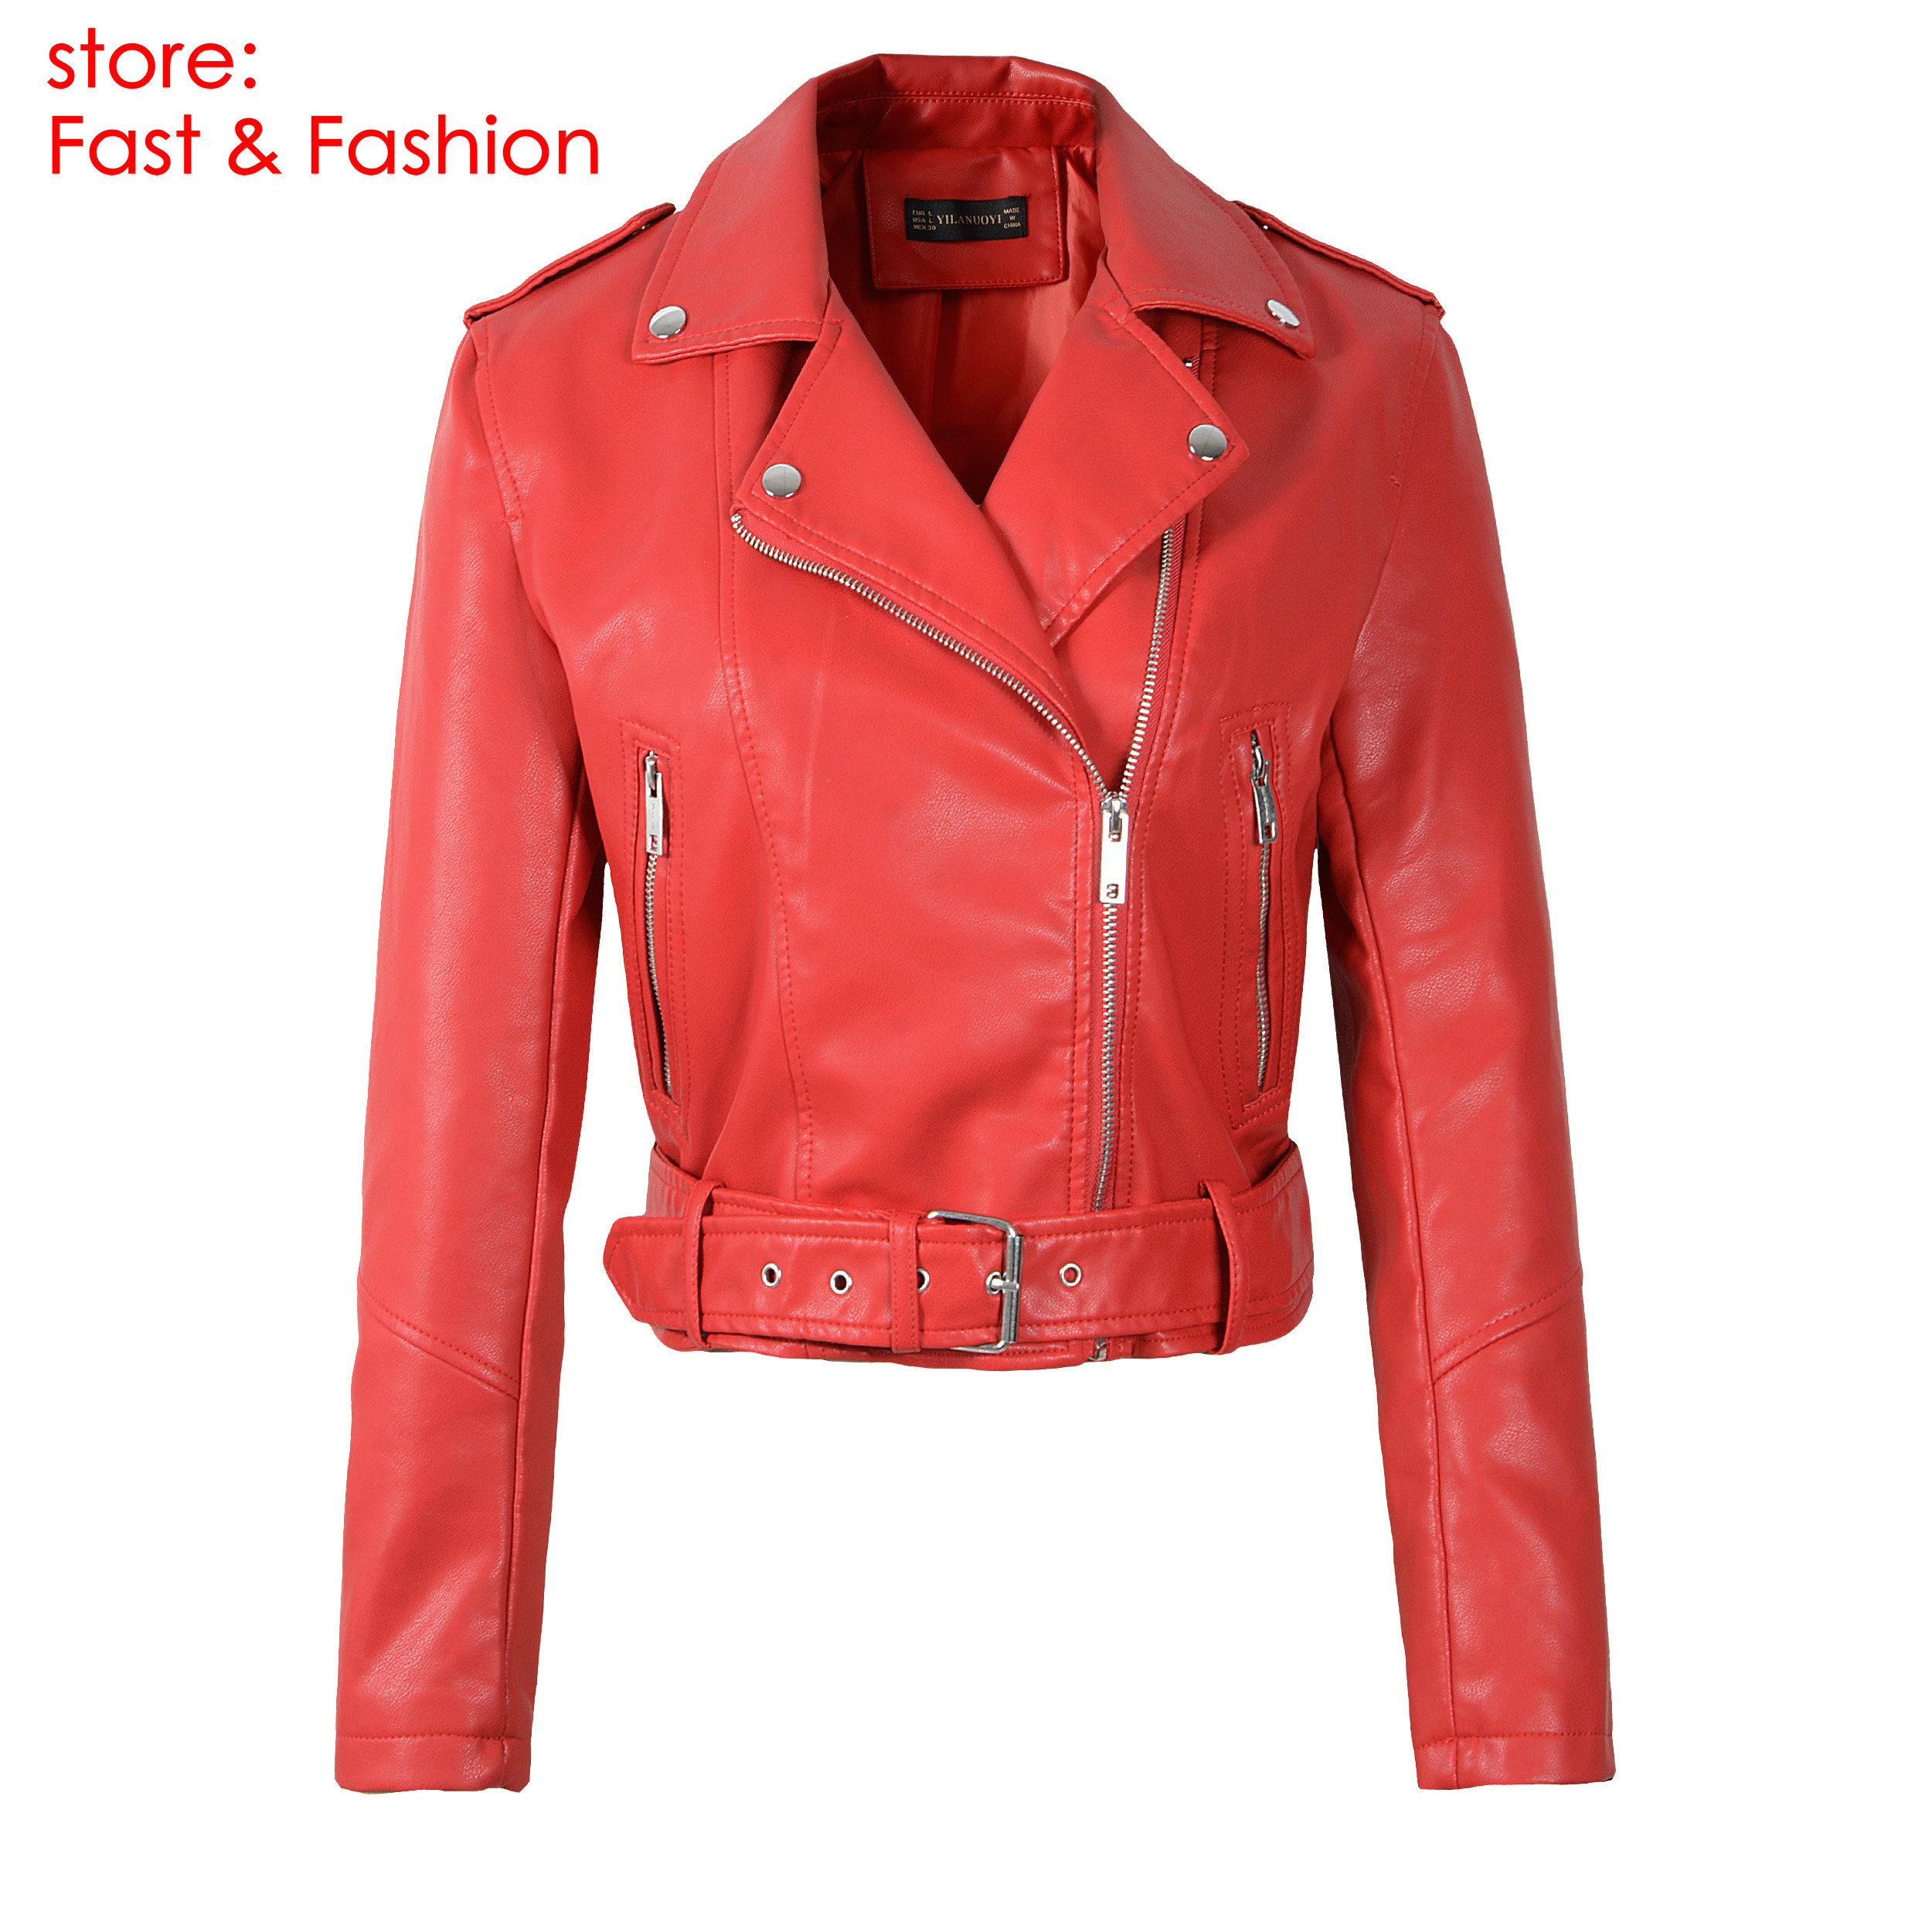 2019 New Fashion Women Autumn Winter Faux Soft Leather Jackets and Coats Lady Red Black Green PU Zippers Motorcycle Streetwear